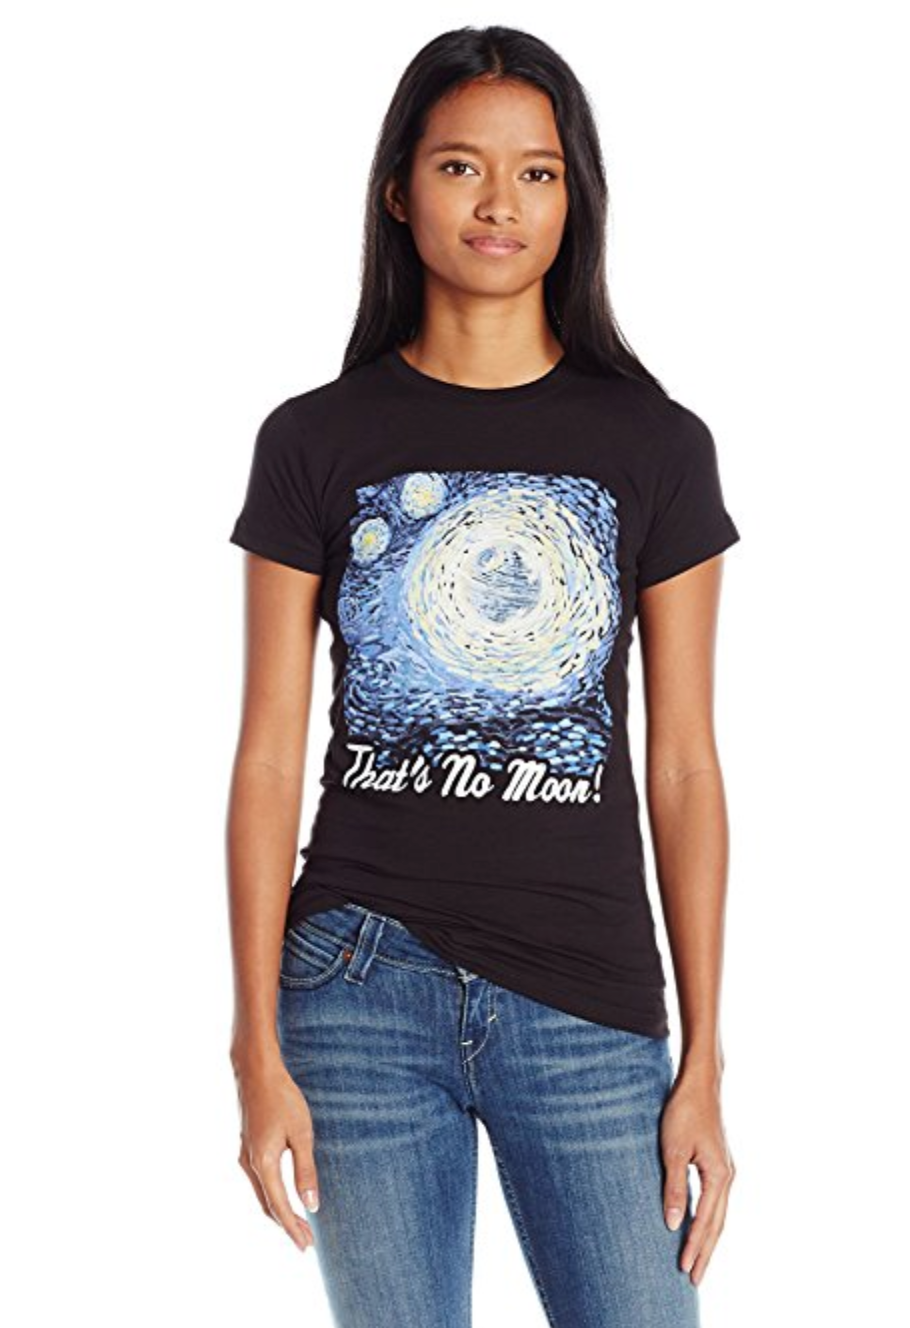 That's No Moon: Star Wars T-Shirt for Women